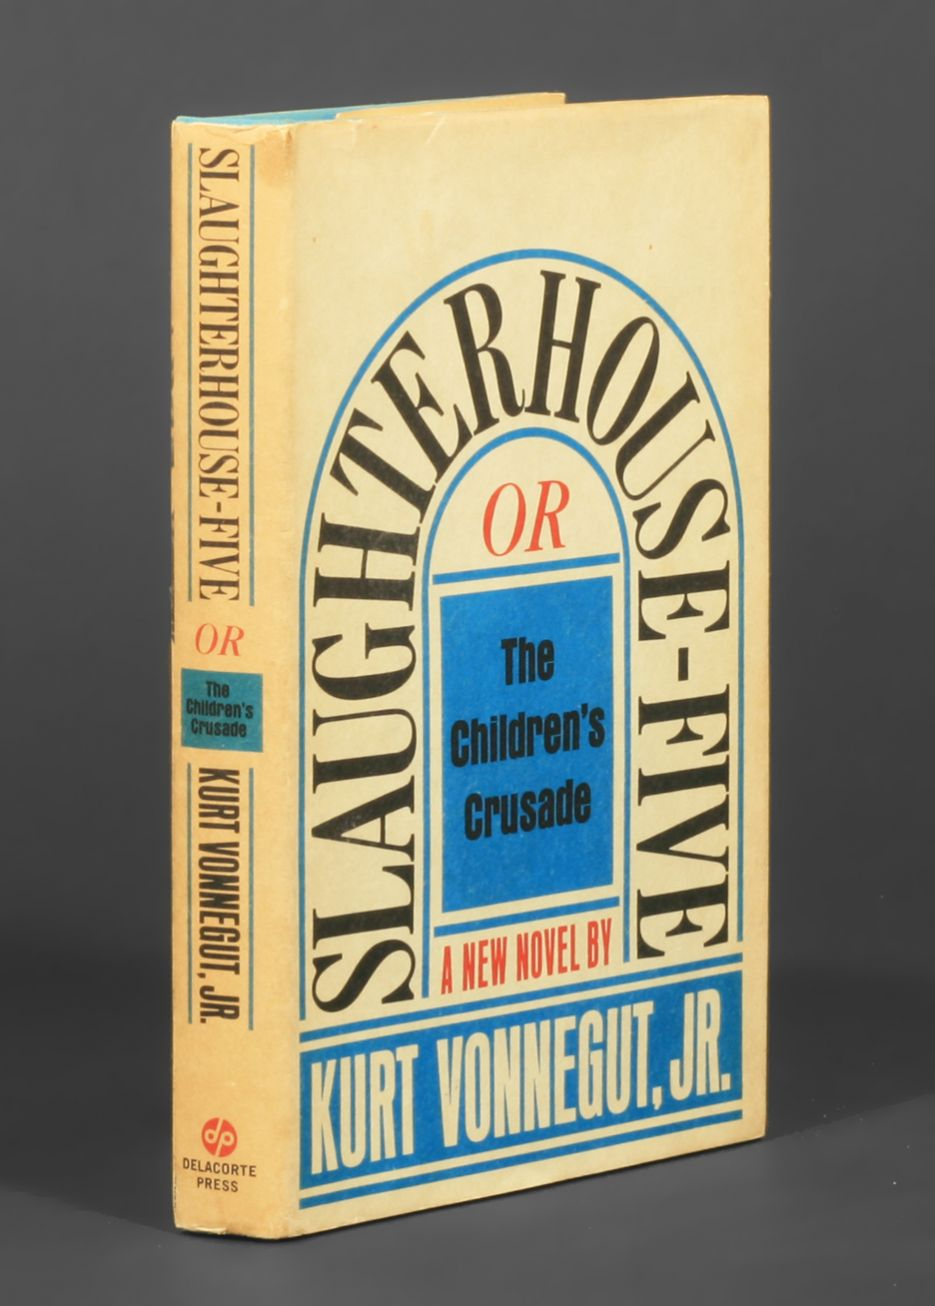 an analysis of slaughterhouse five A comprehensive book analysis of slaughterhouse-five by kurt vonnegut from the novelguide, including: a complete summary, a biography of the author, character.